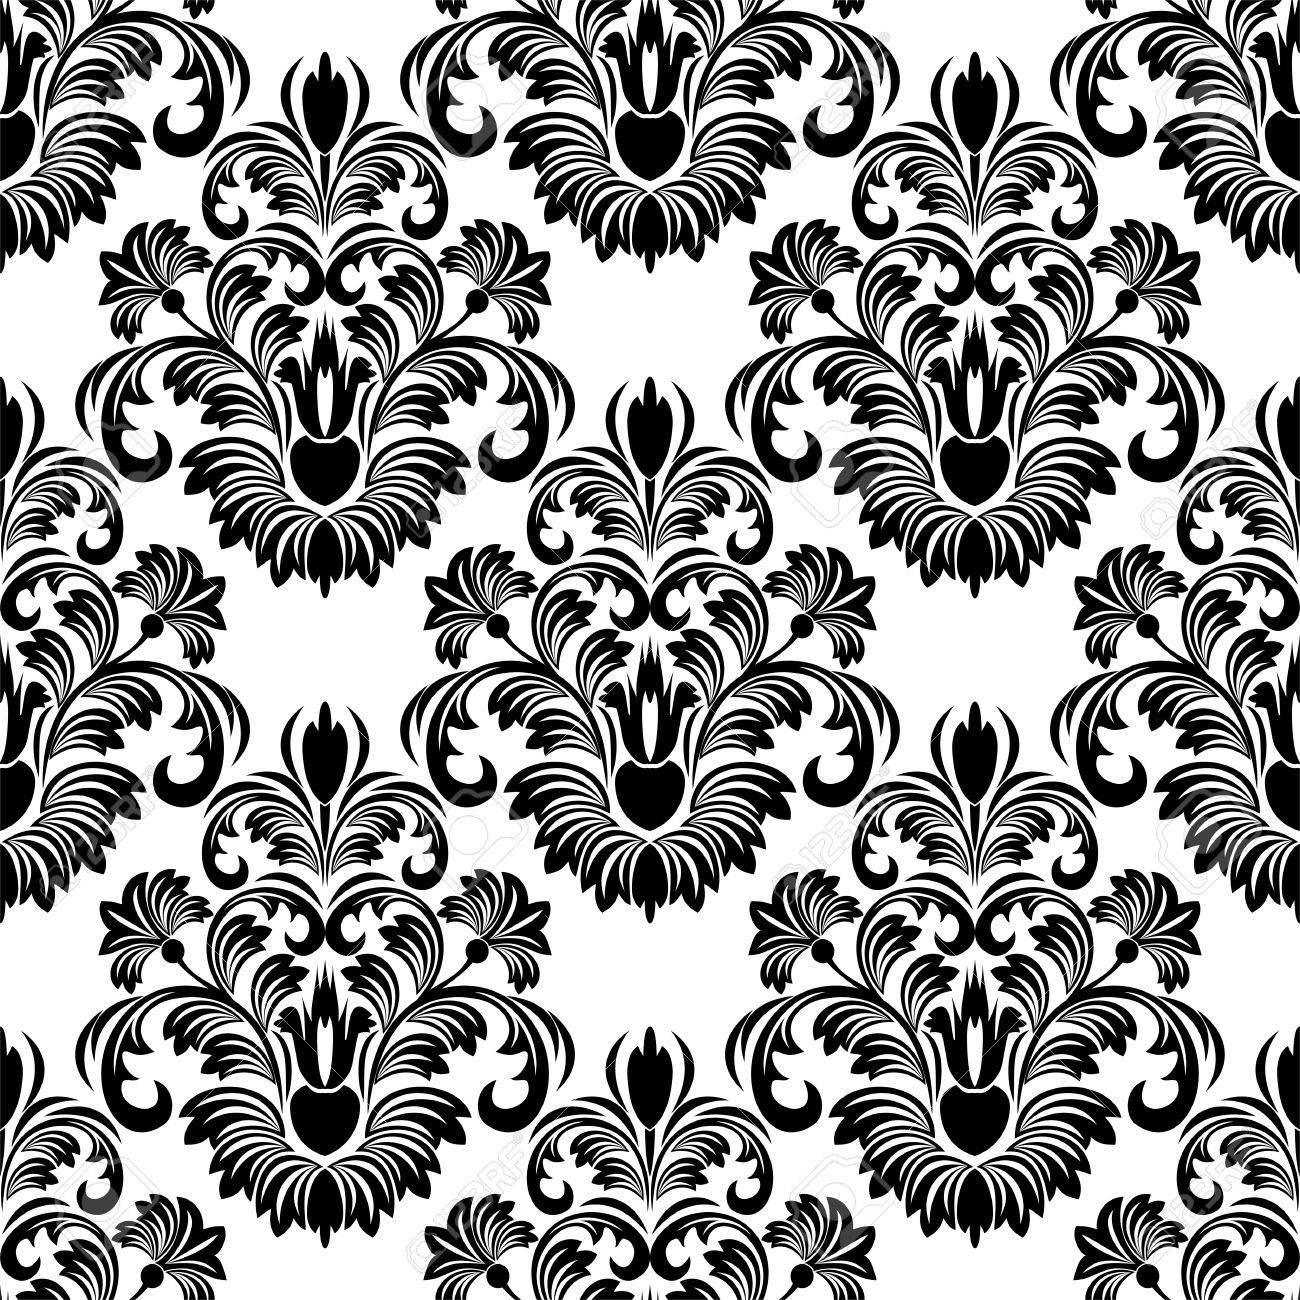 Seamless Damask Wallpaper For Design Black On White Royalty Free Cliparts Vectors And Stock Illustration Image 41296432